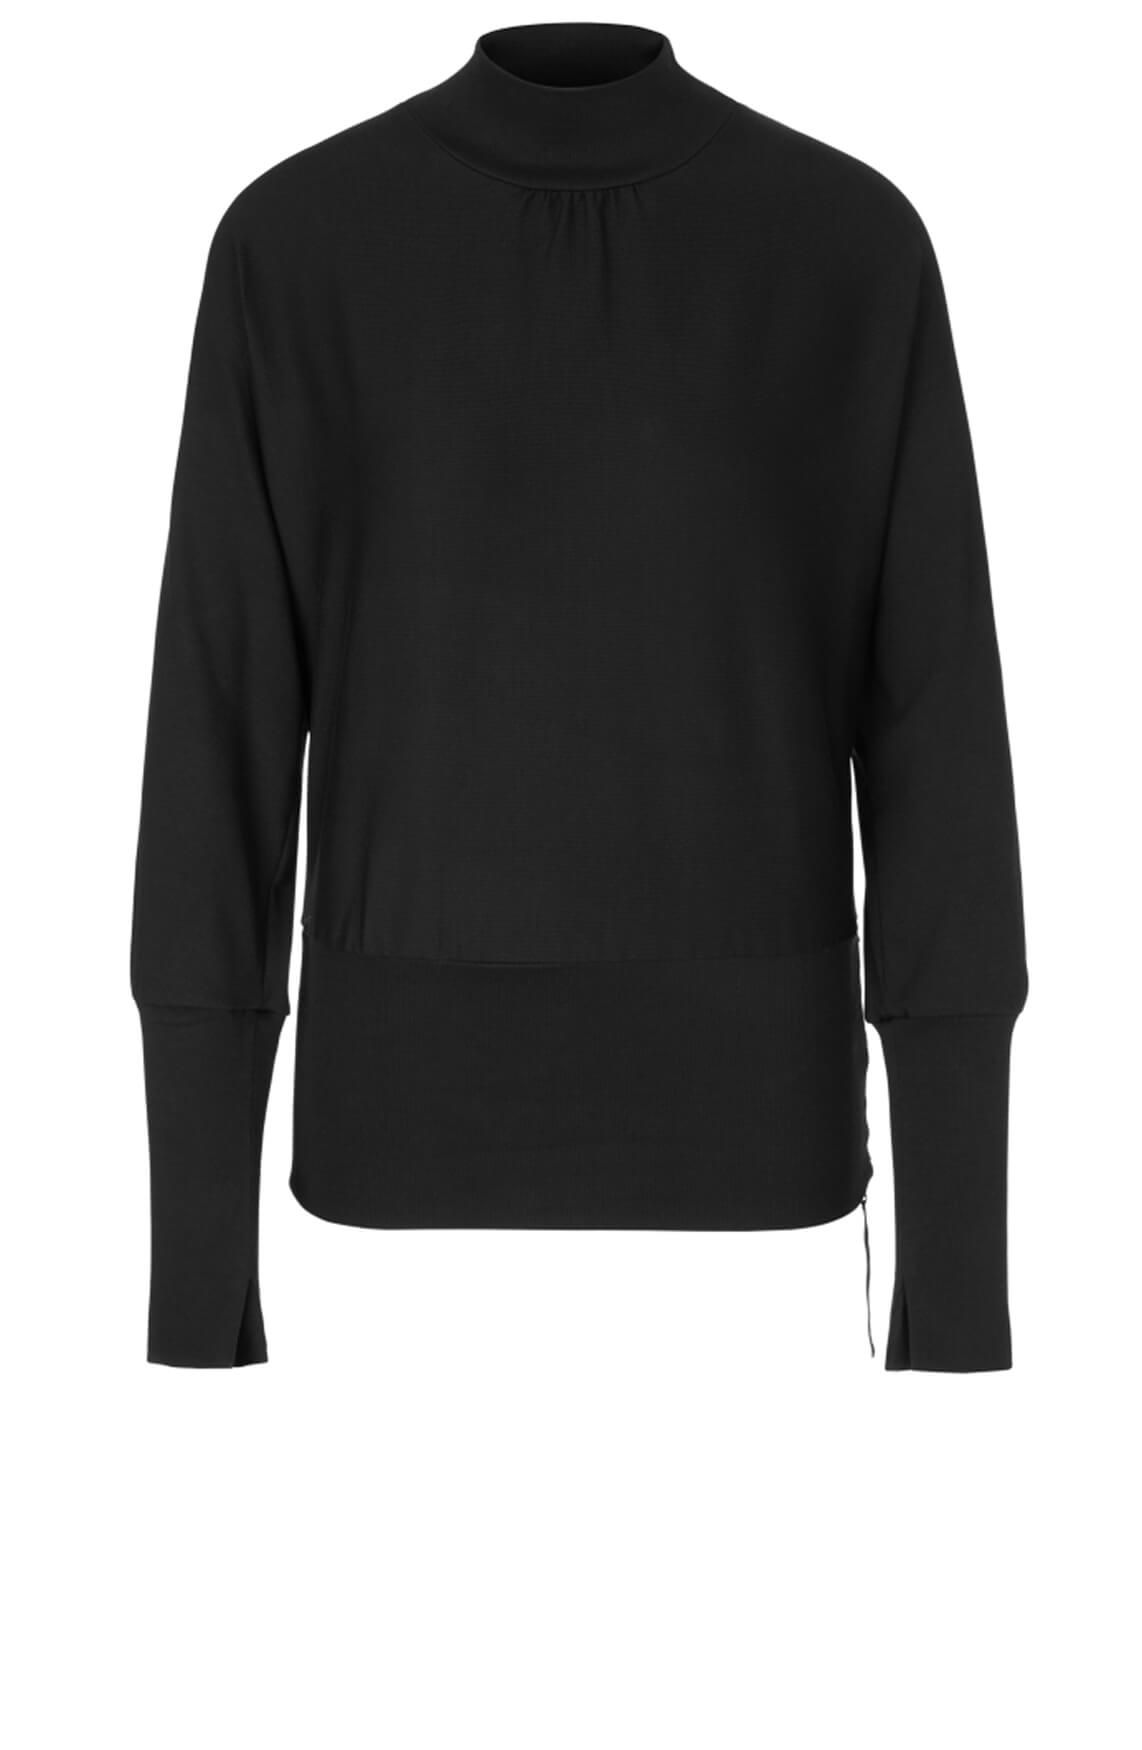 Marccain Sports Dames Shirt met cut-out zwart